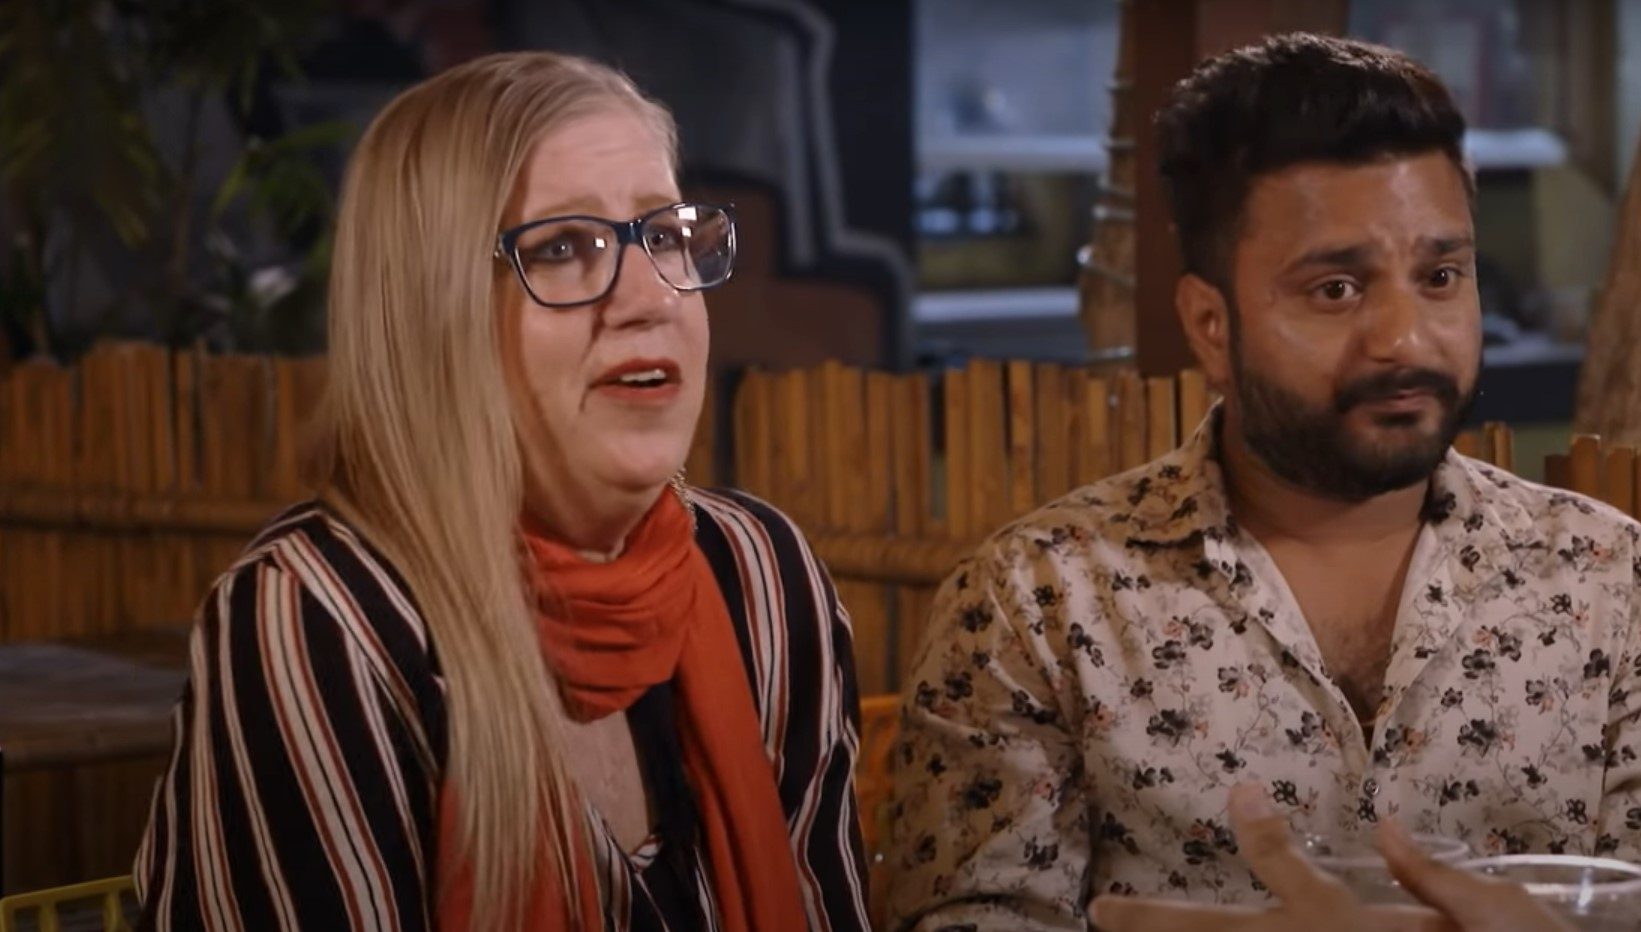 Sumit and Jenny on 90 Day Fiancé